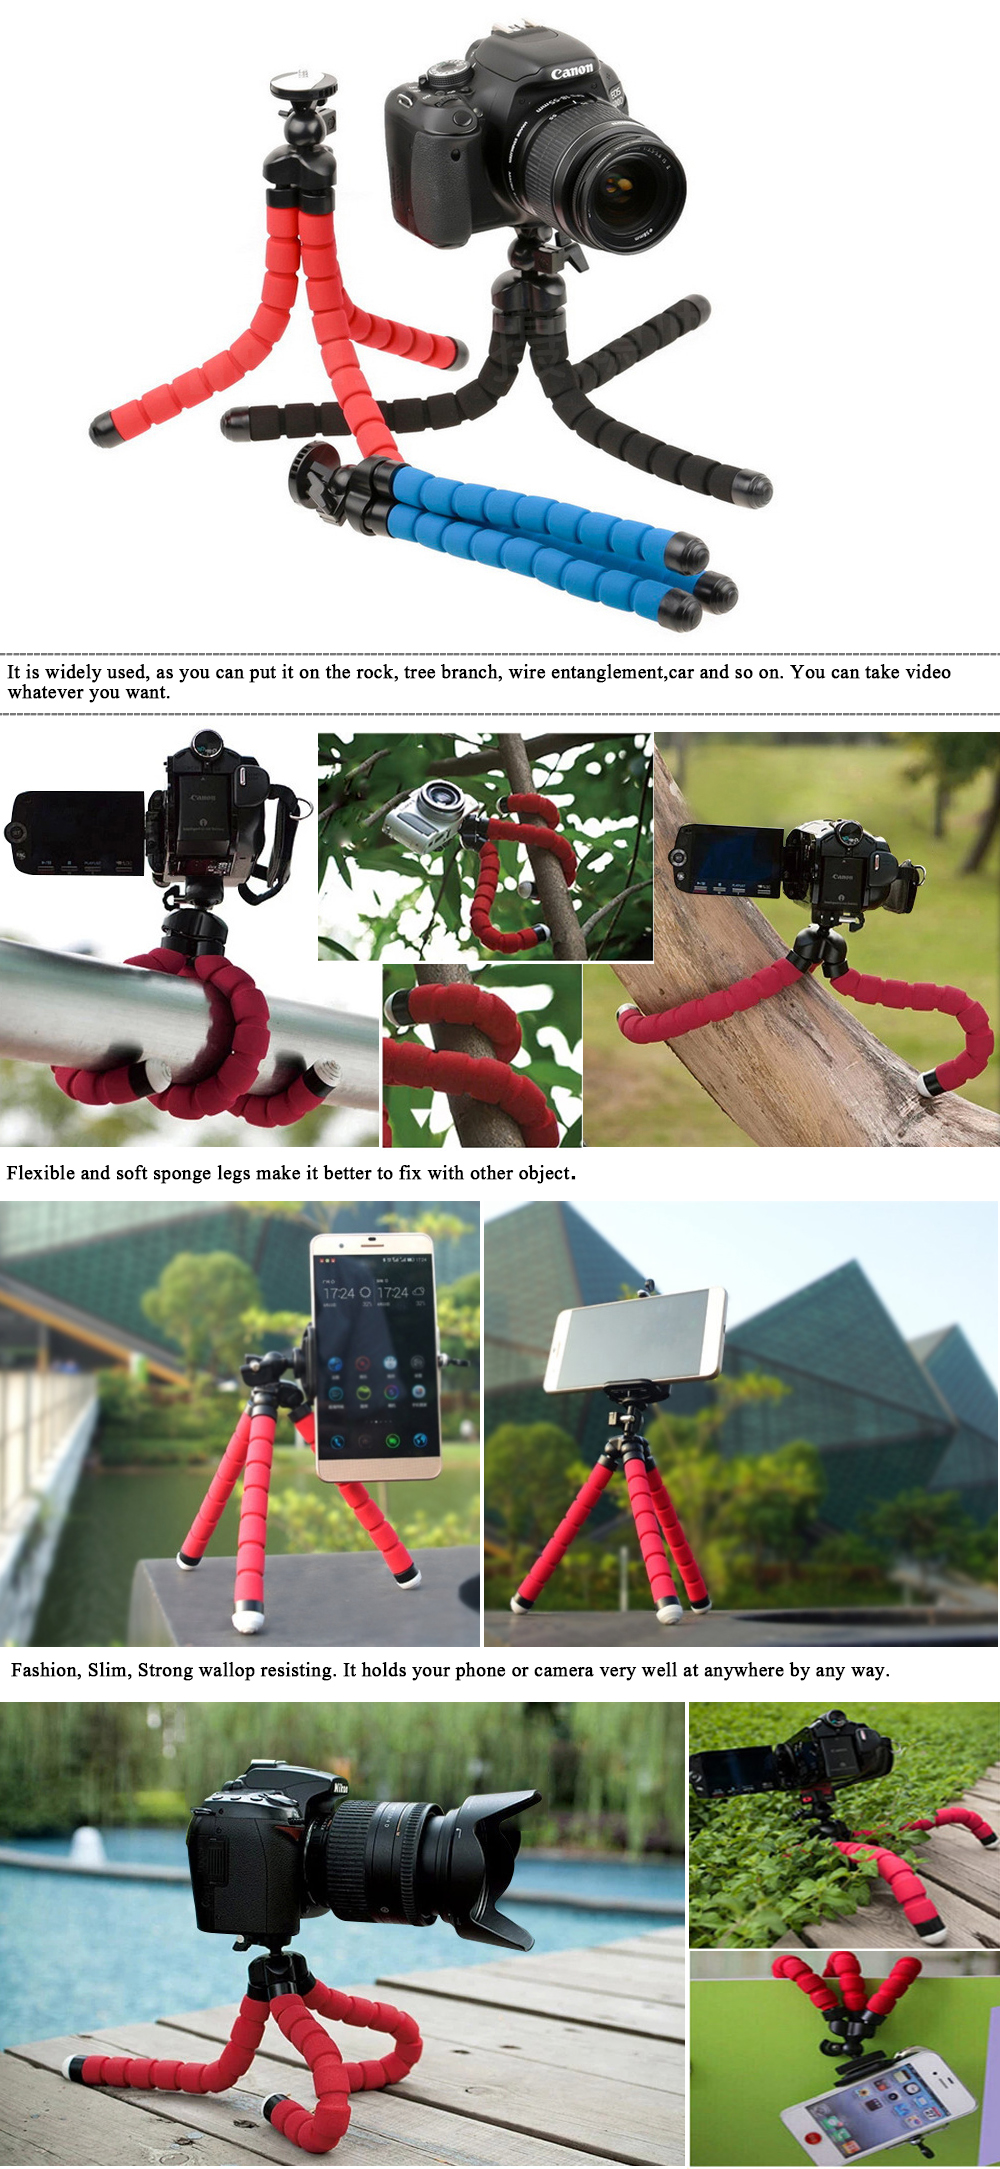 Husiway for gopro accessories set for go pro hero 5 4 3 kit mount for SJCAM SJ4000 / xiaomi yi camera / eken h9 tripod 13L